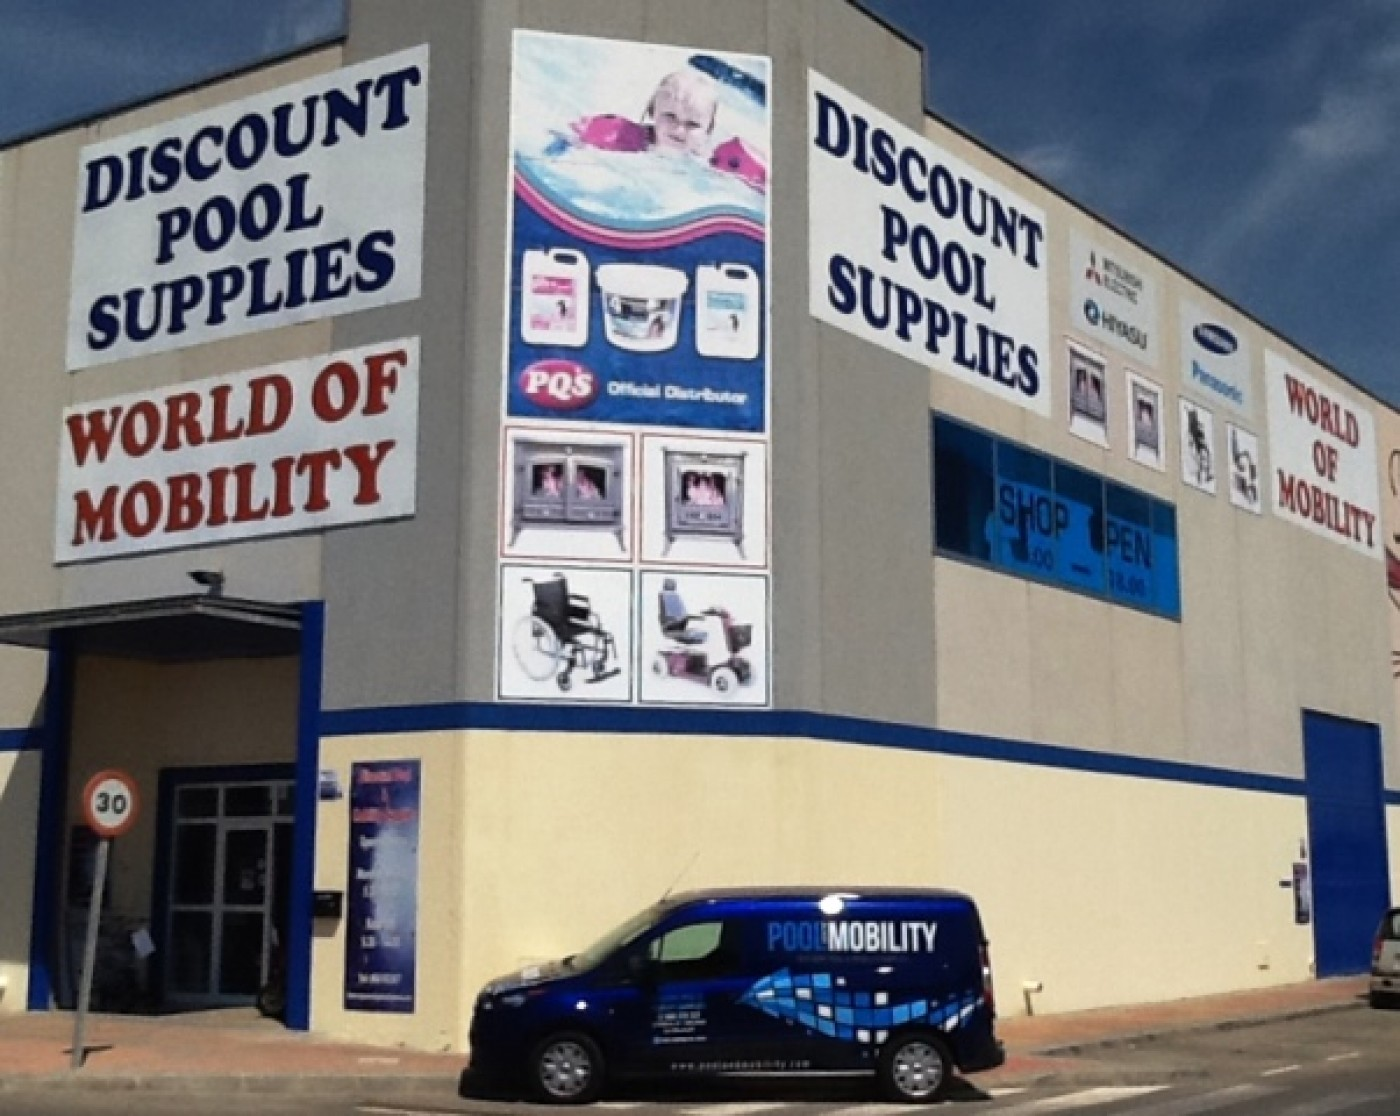 Discount Pool and Mobility Supplies